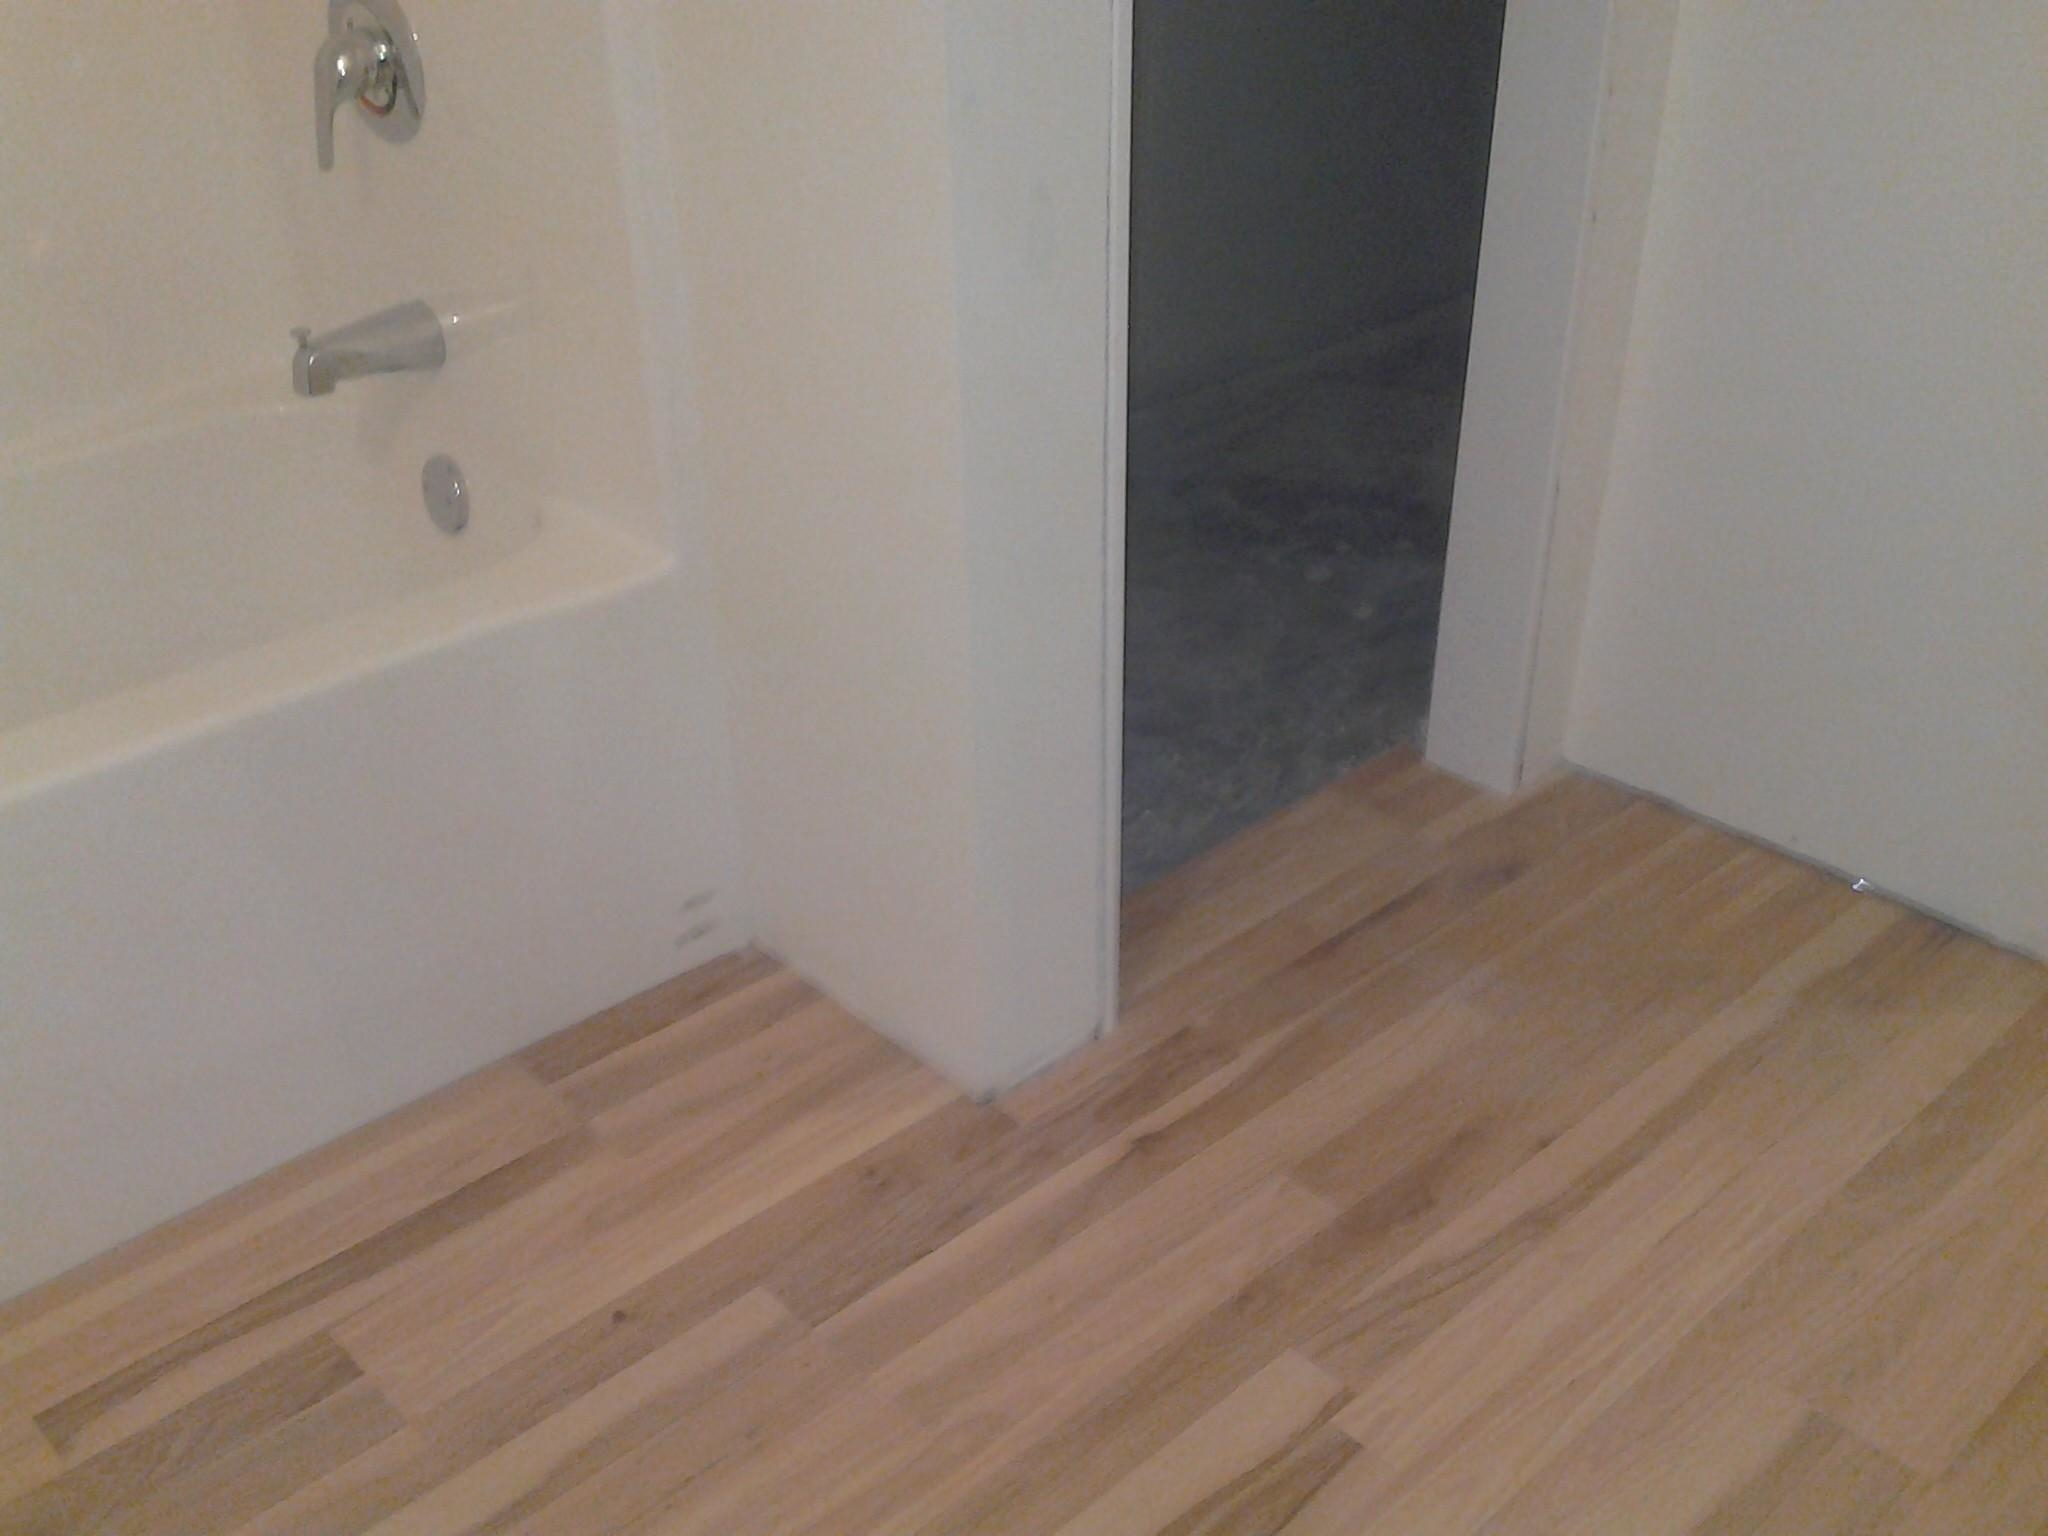 Energy plus home improvements st louis mi business for Laminate flooring michigan